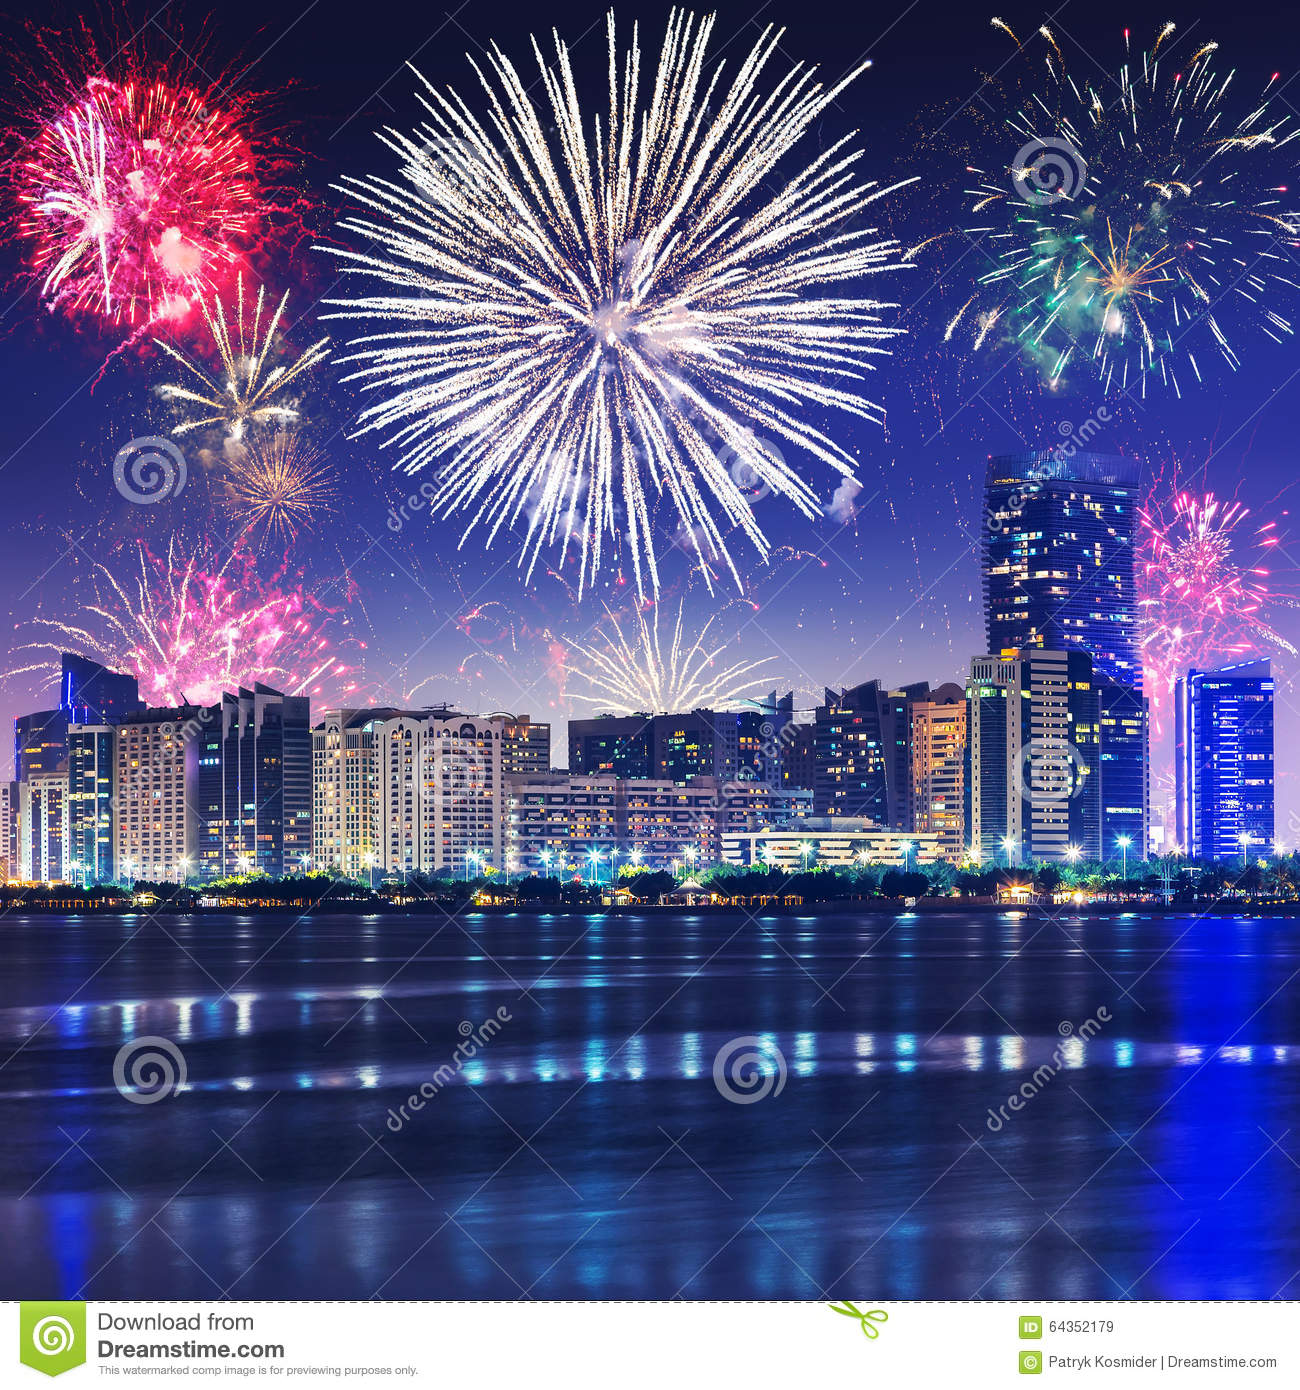 New Year Fireworks Display In Abu Dhabi Stock Image - Image of landmark, capital: 64352179